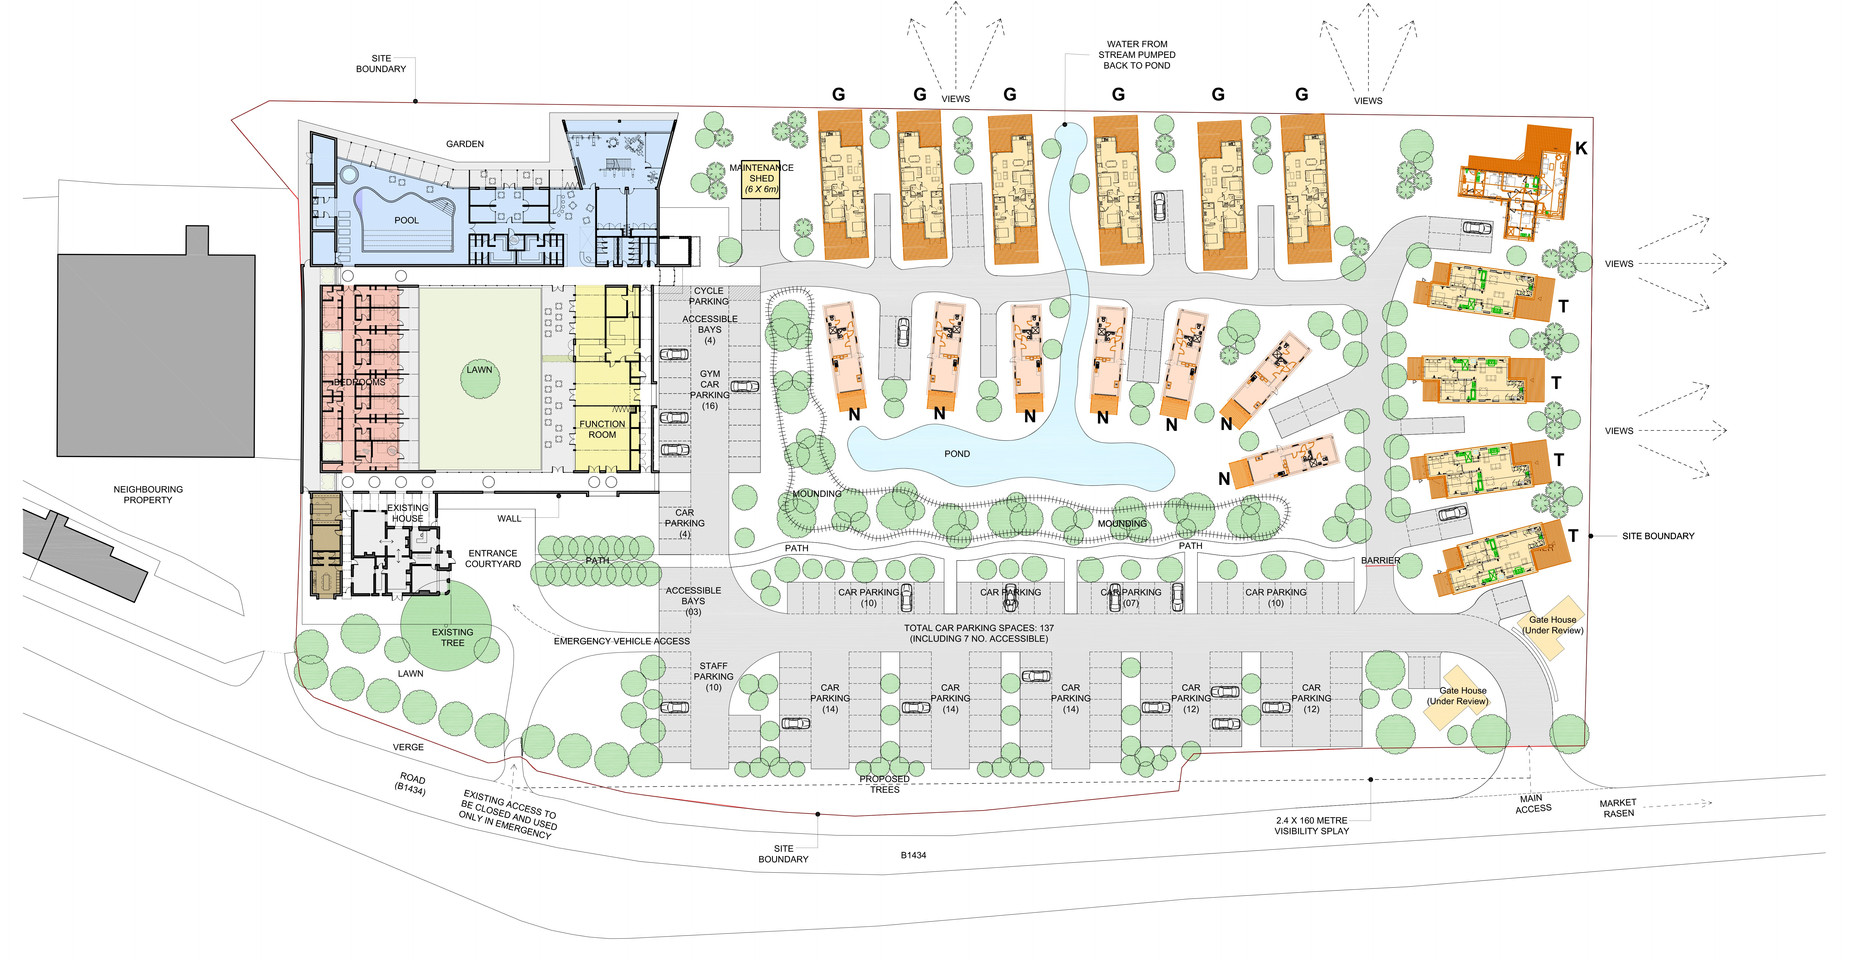 2419_P001_REV_H - Proposed Overall Site